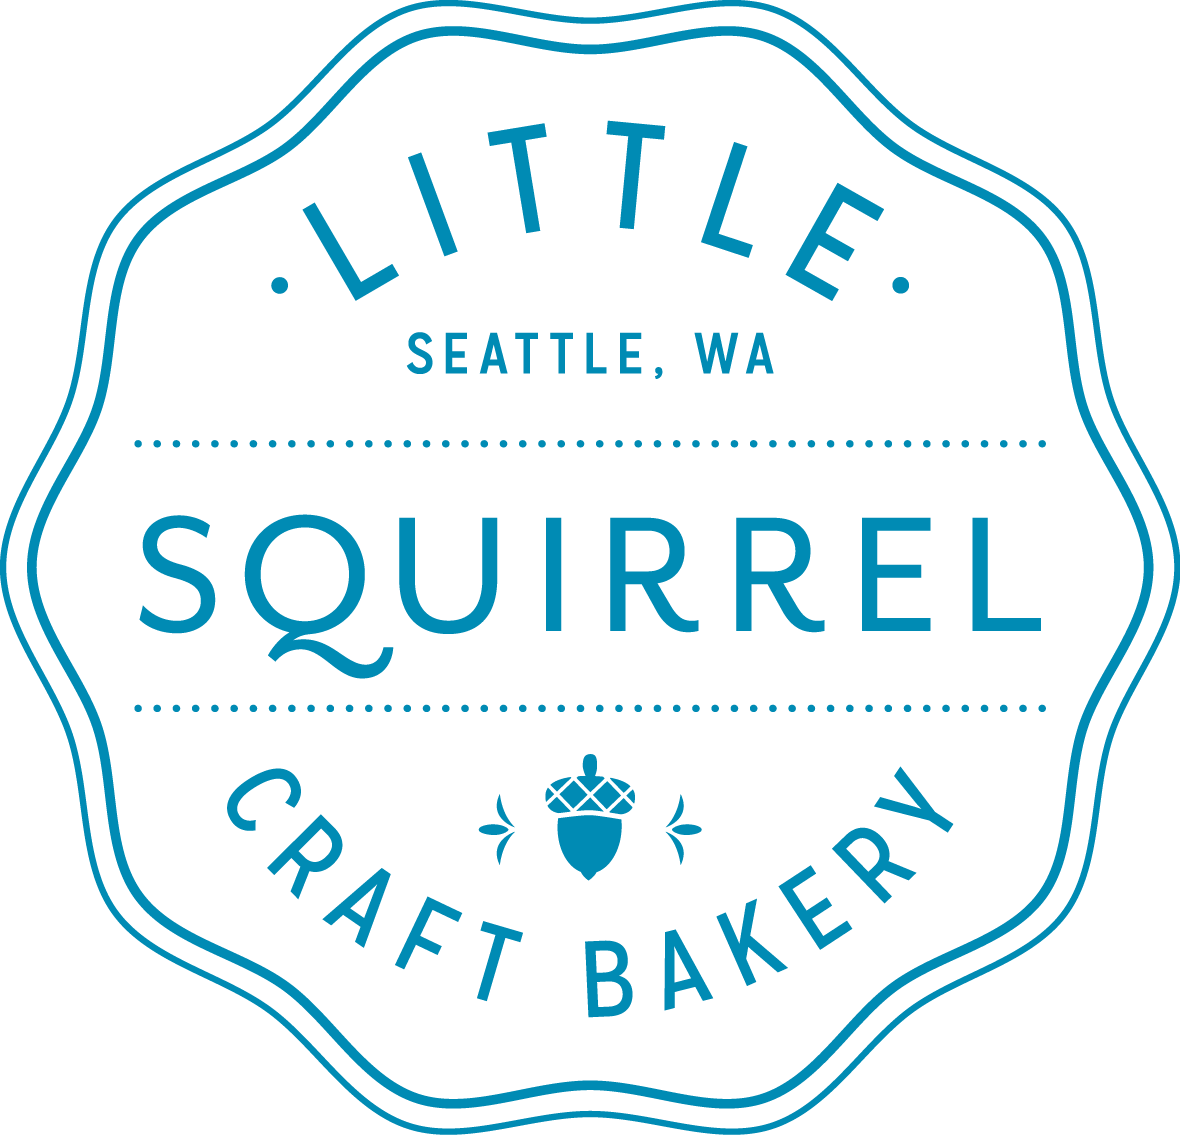 Little Squirrel Bakery